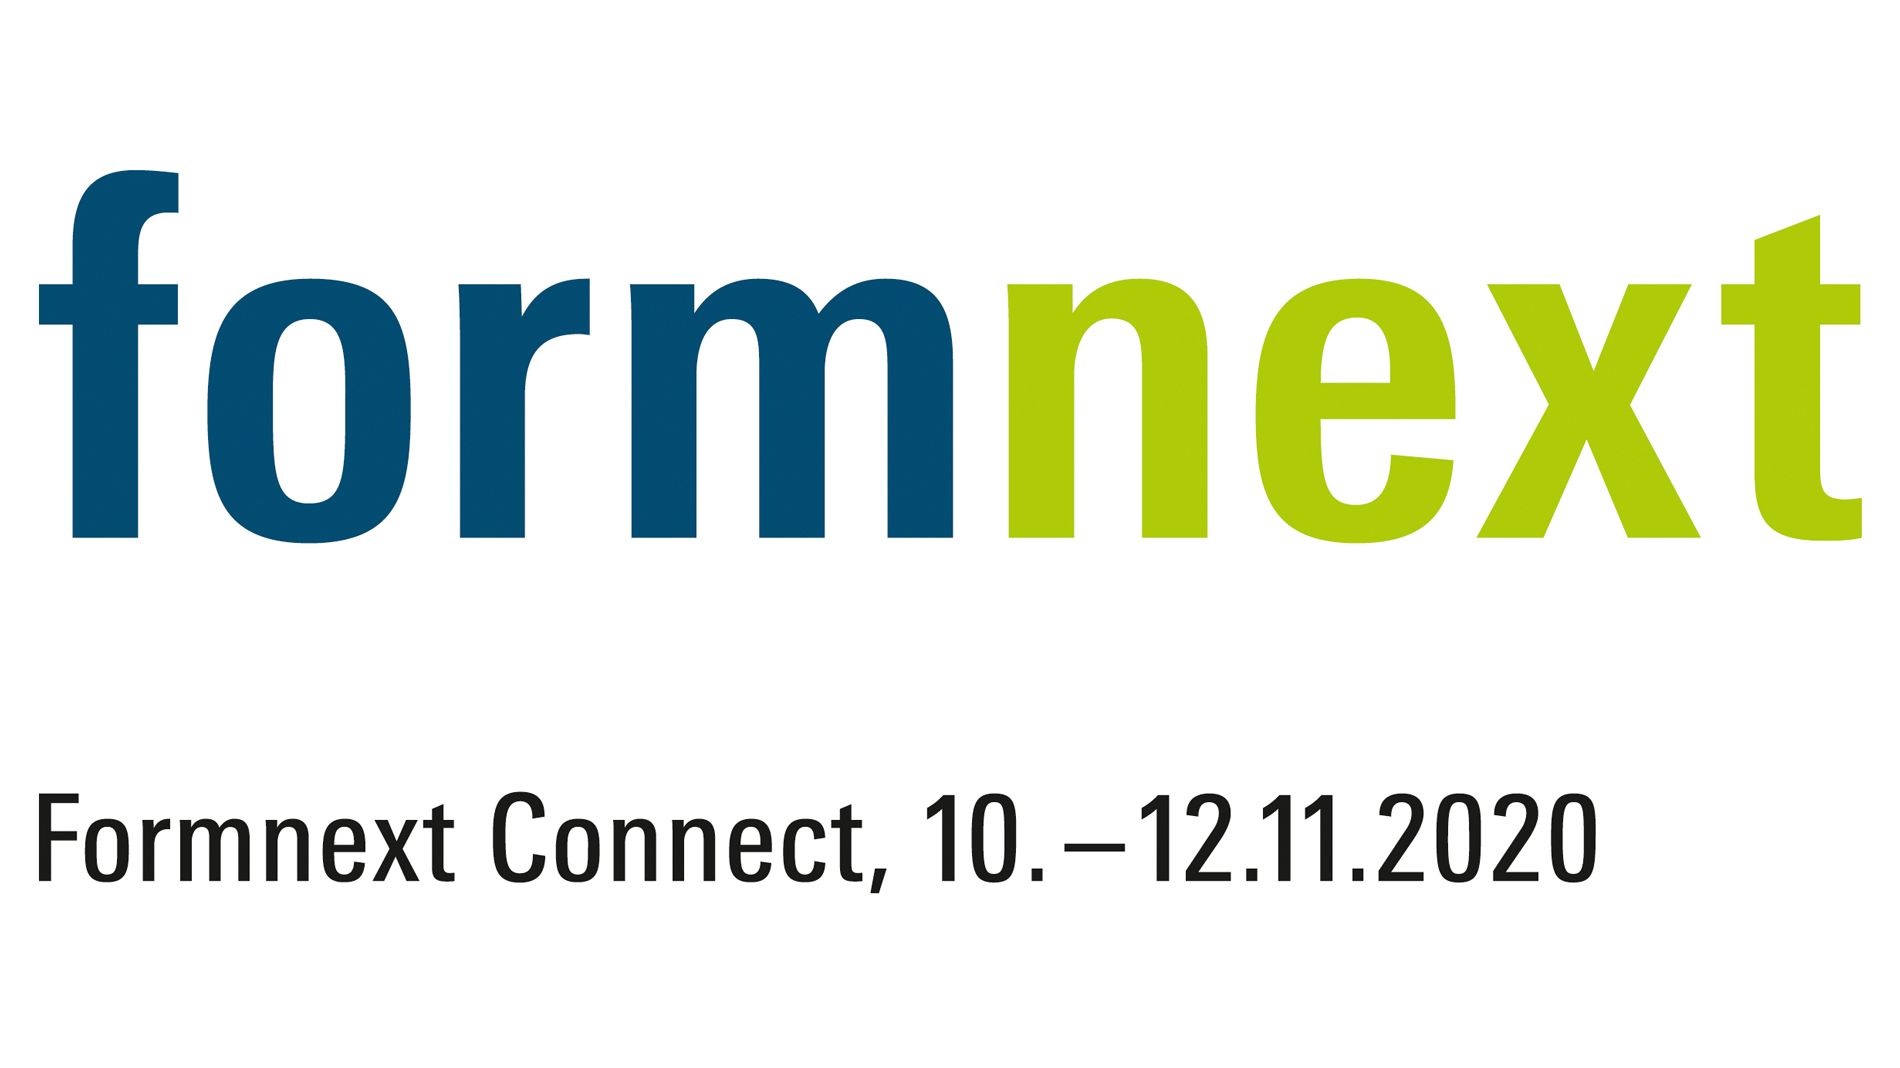 Formnext Connect 2020 logo